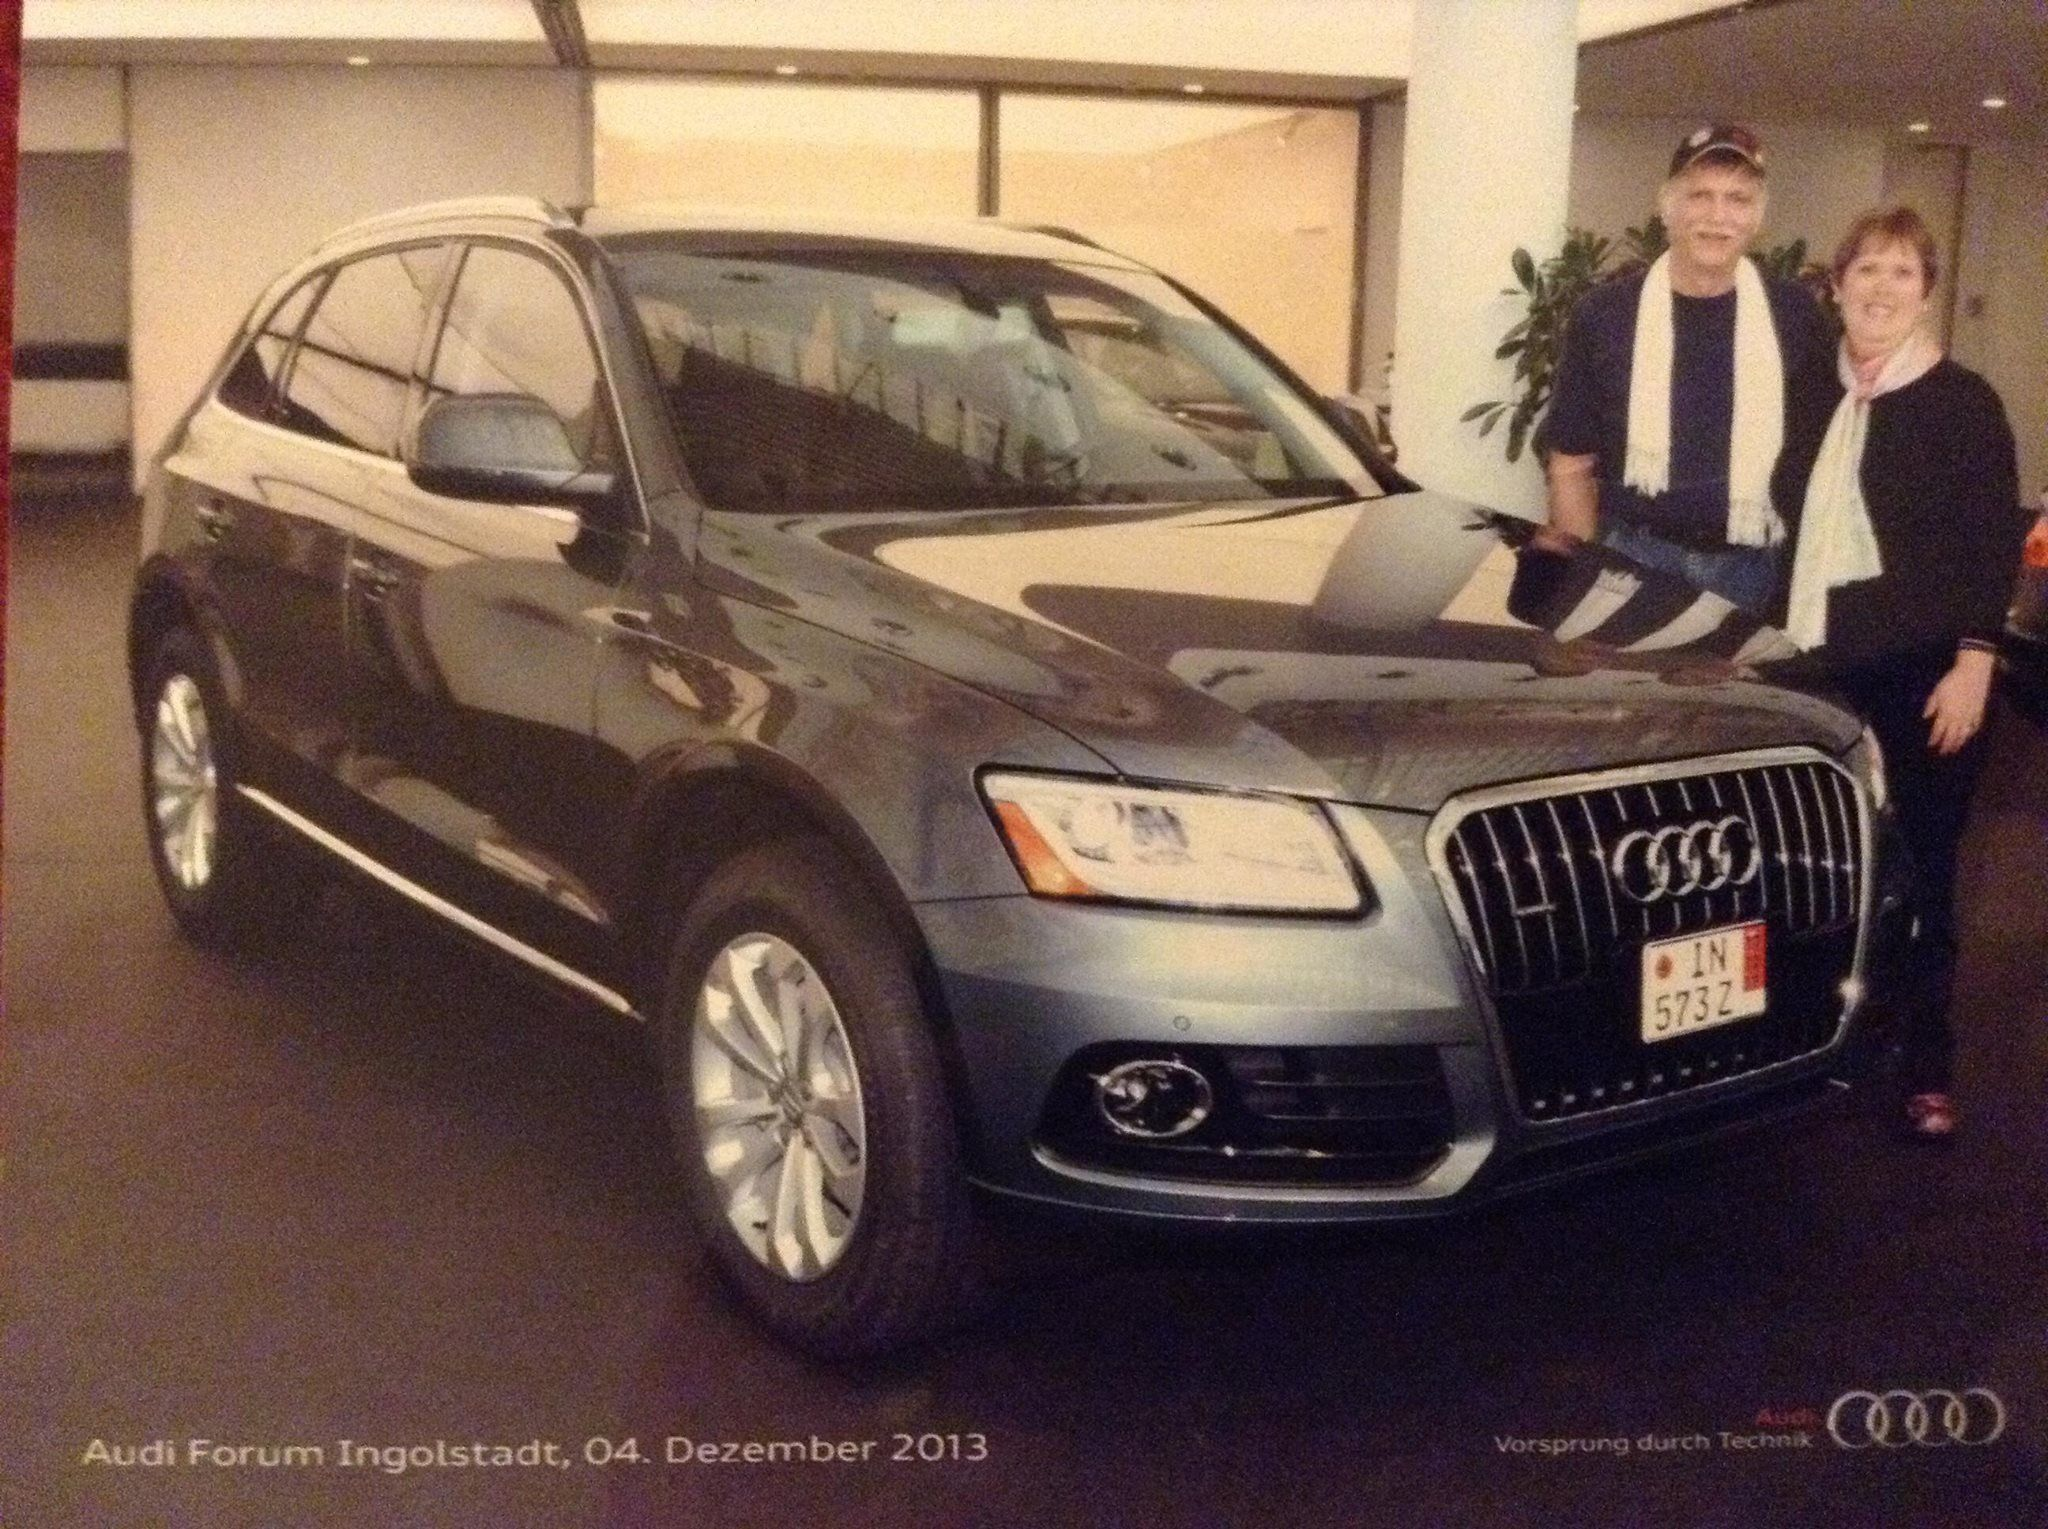 My 2014 Audi Q5 delivered to me in Ingolstadt, Germany!